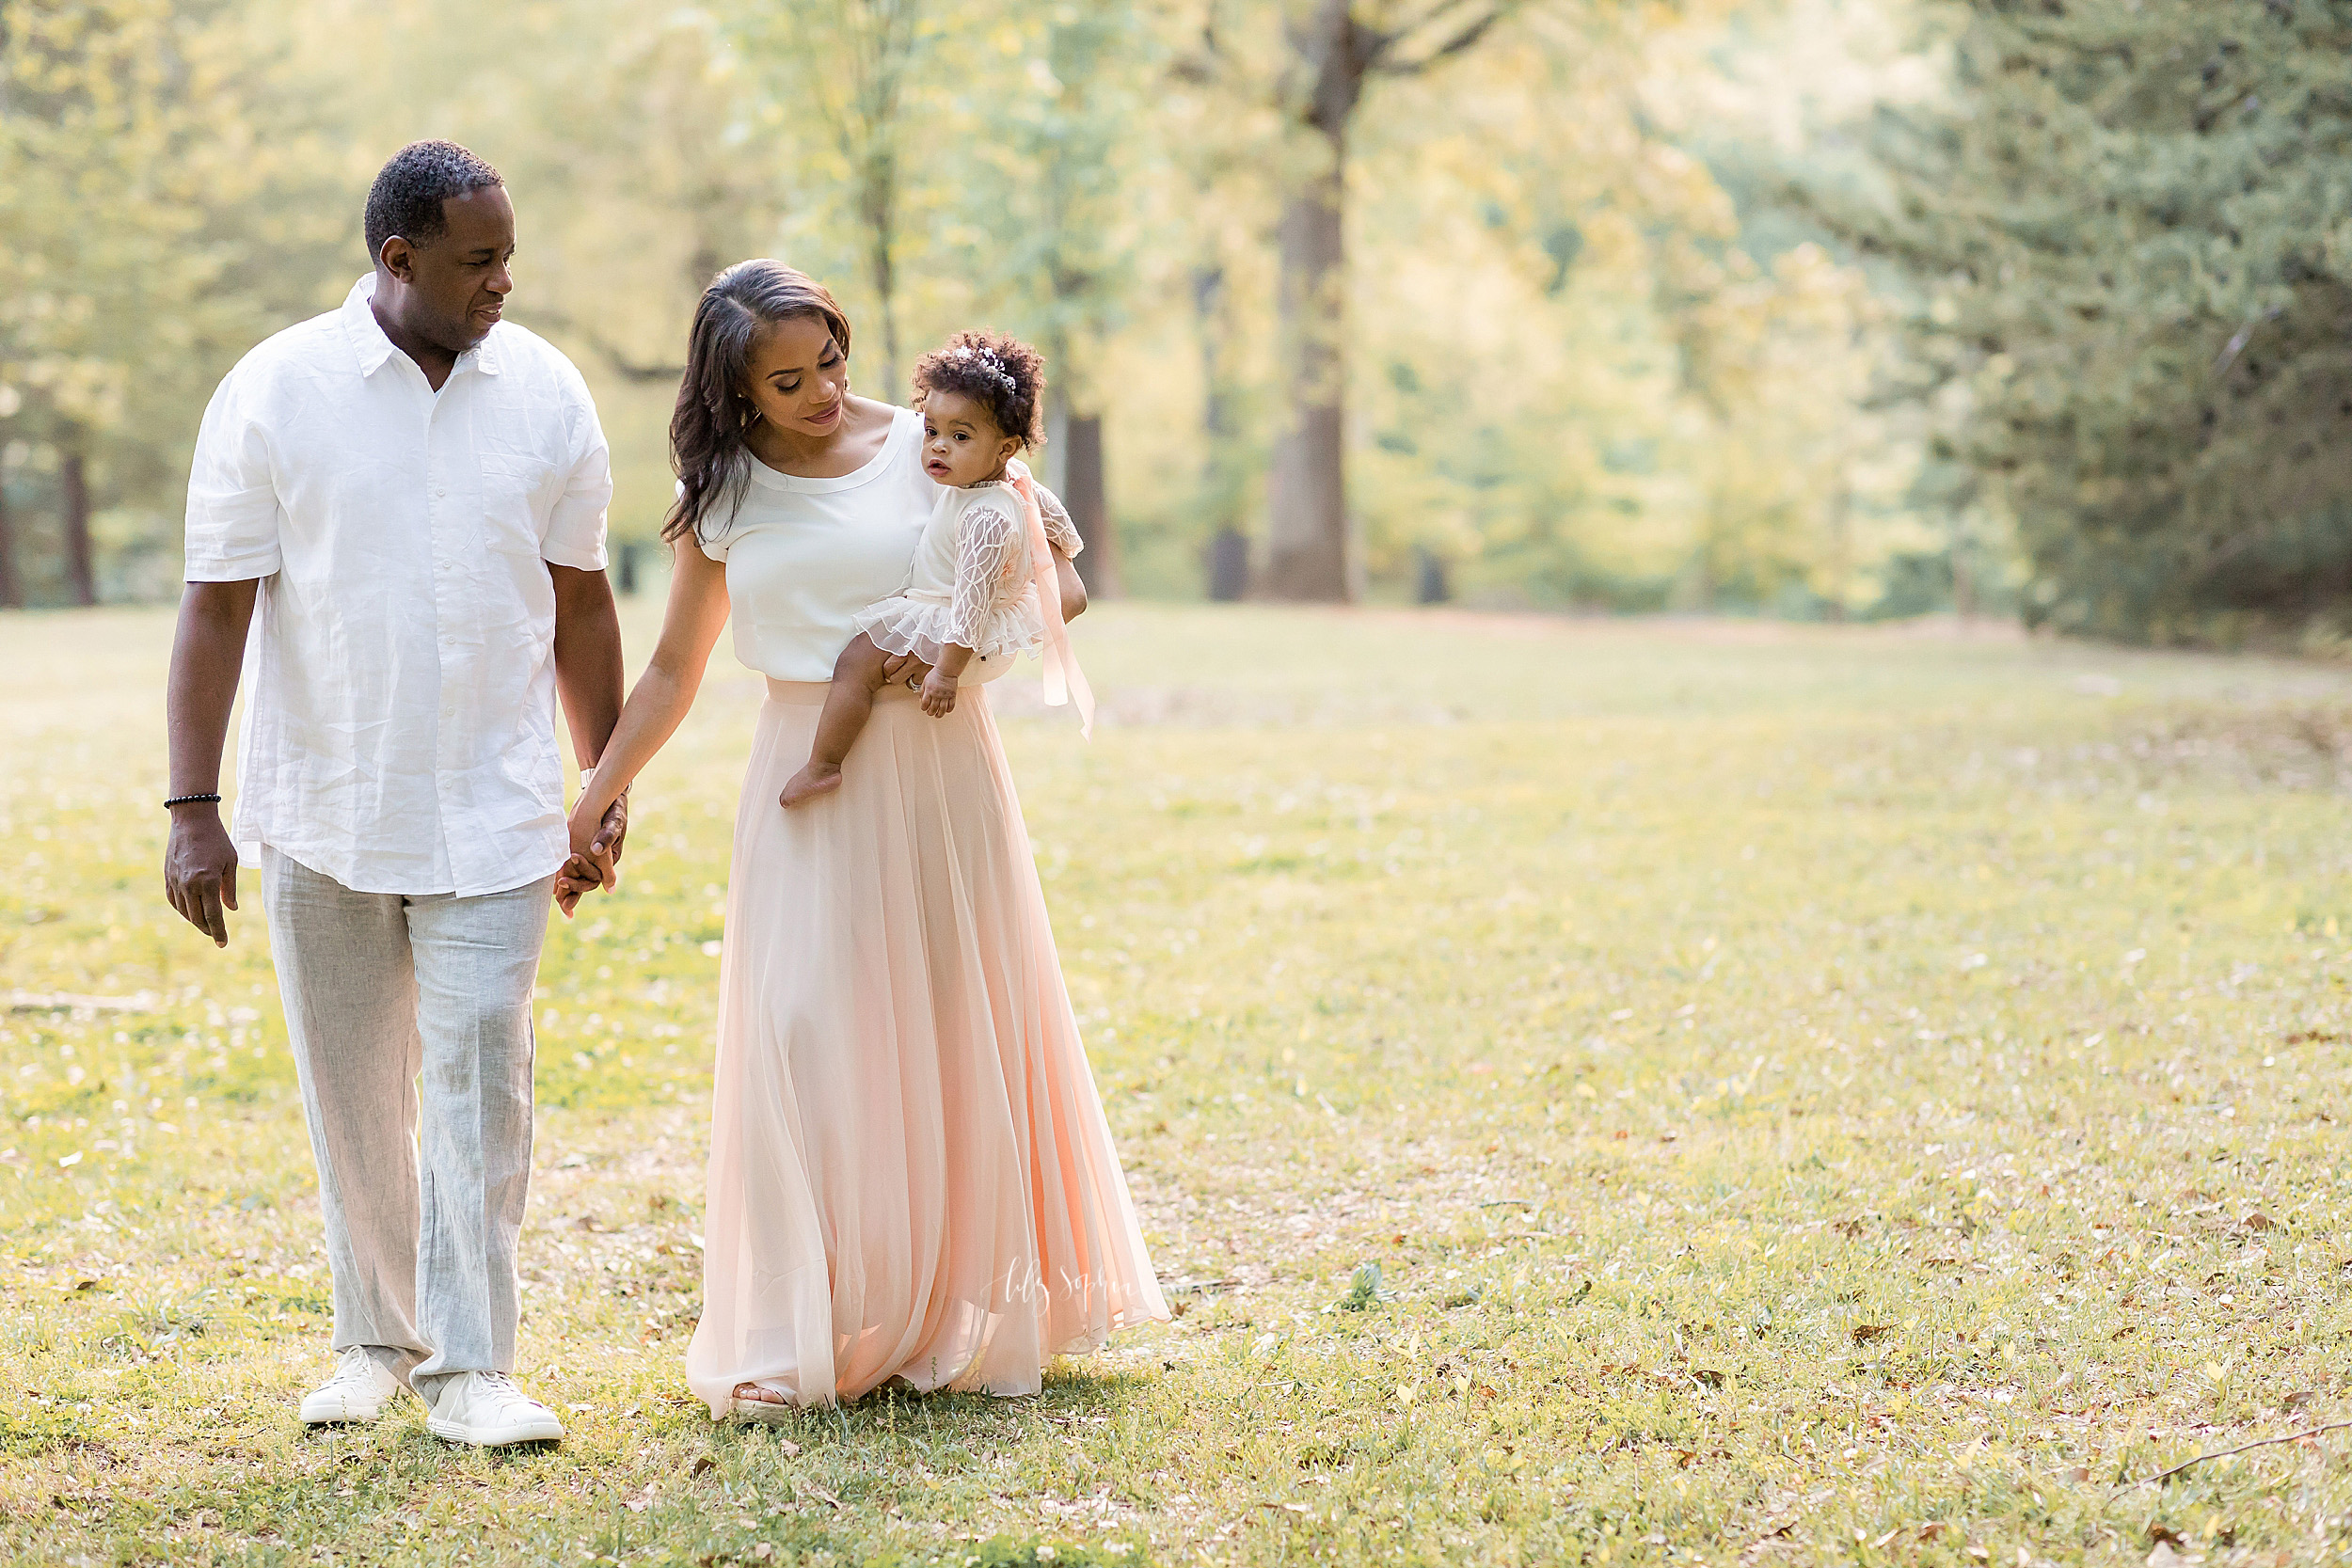 Family photo of three as they walk in an Atlanta park at sunset celebrating their daughter turning one.